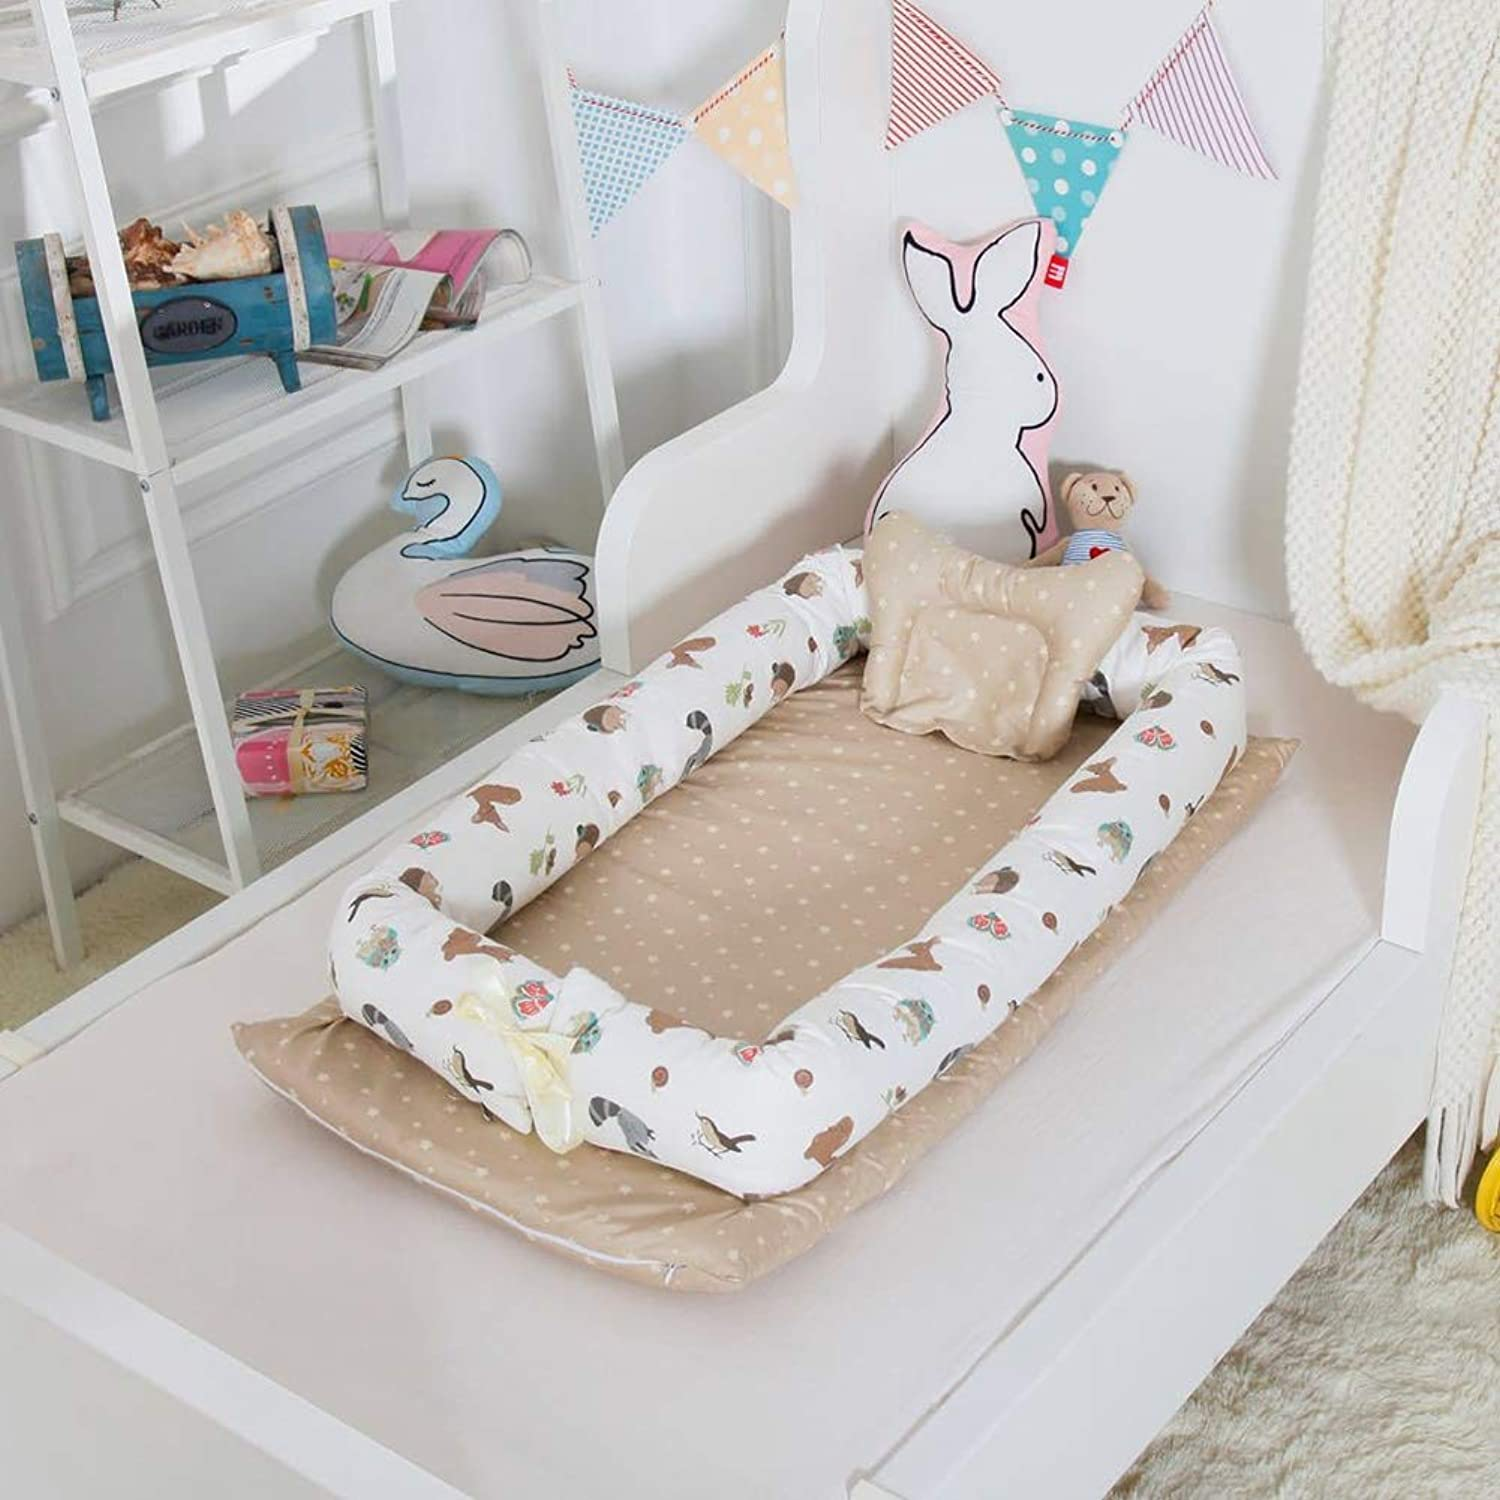 L L Baby Nest Crib Cotton Portable Newborn Isolated Bed Detachable Cover 90  55  15CM 35.4  21.7  5.9 inch, 11